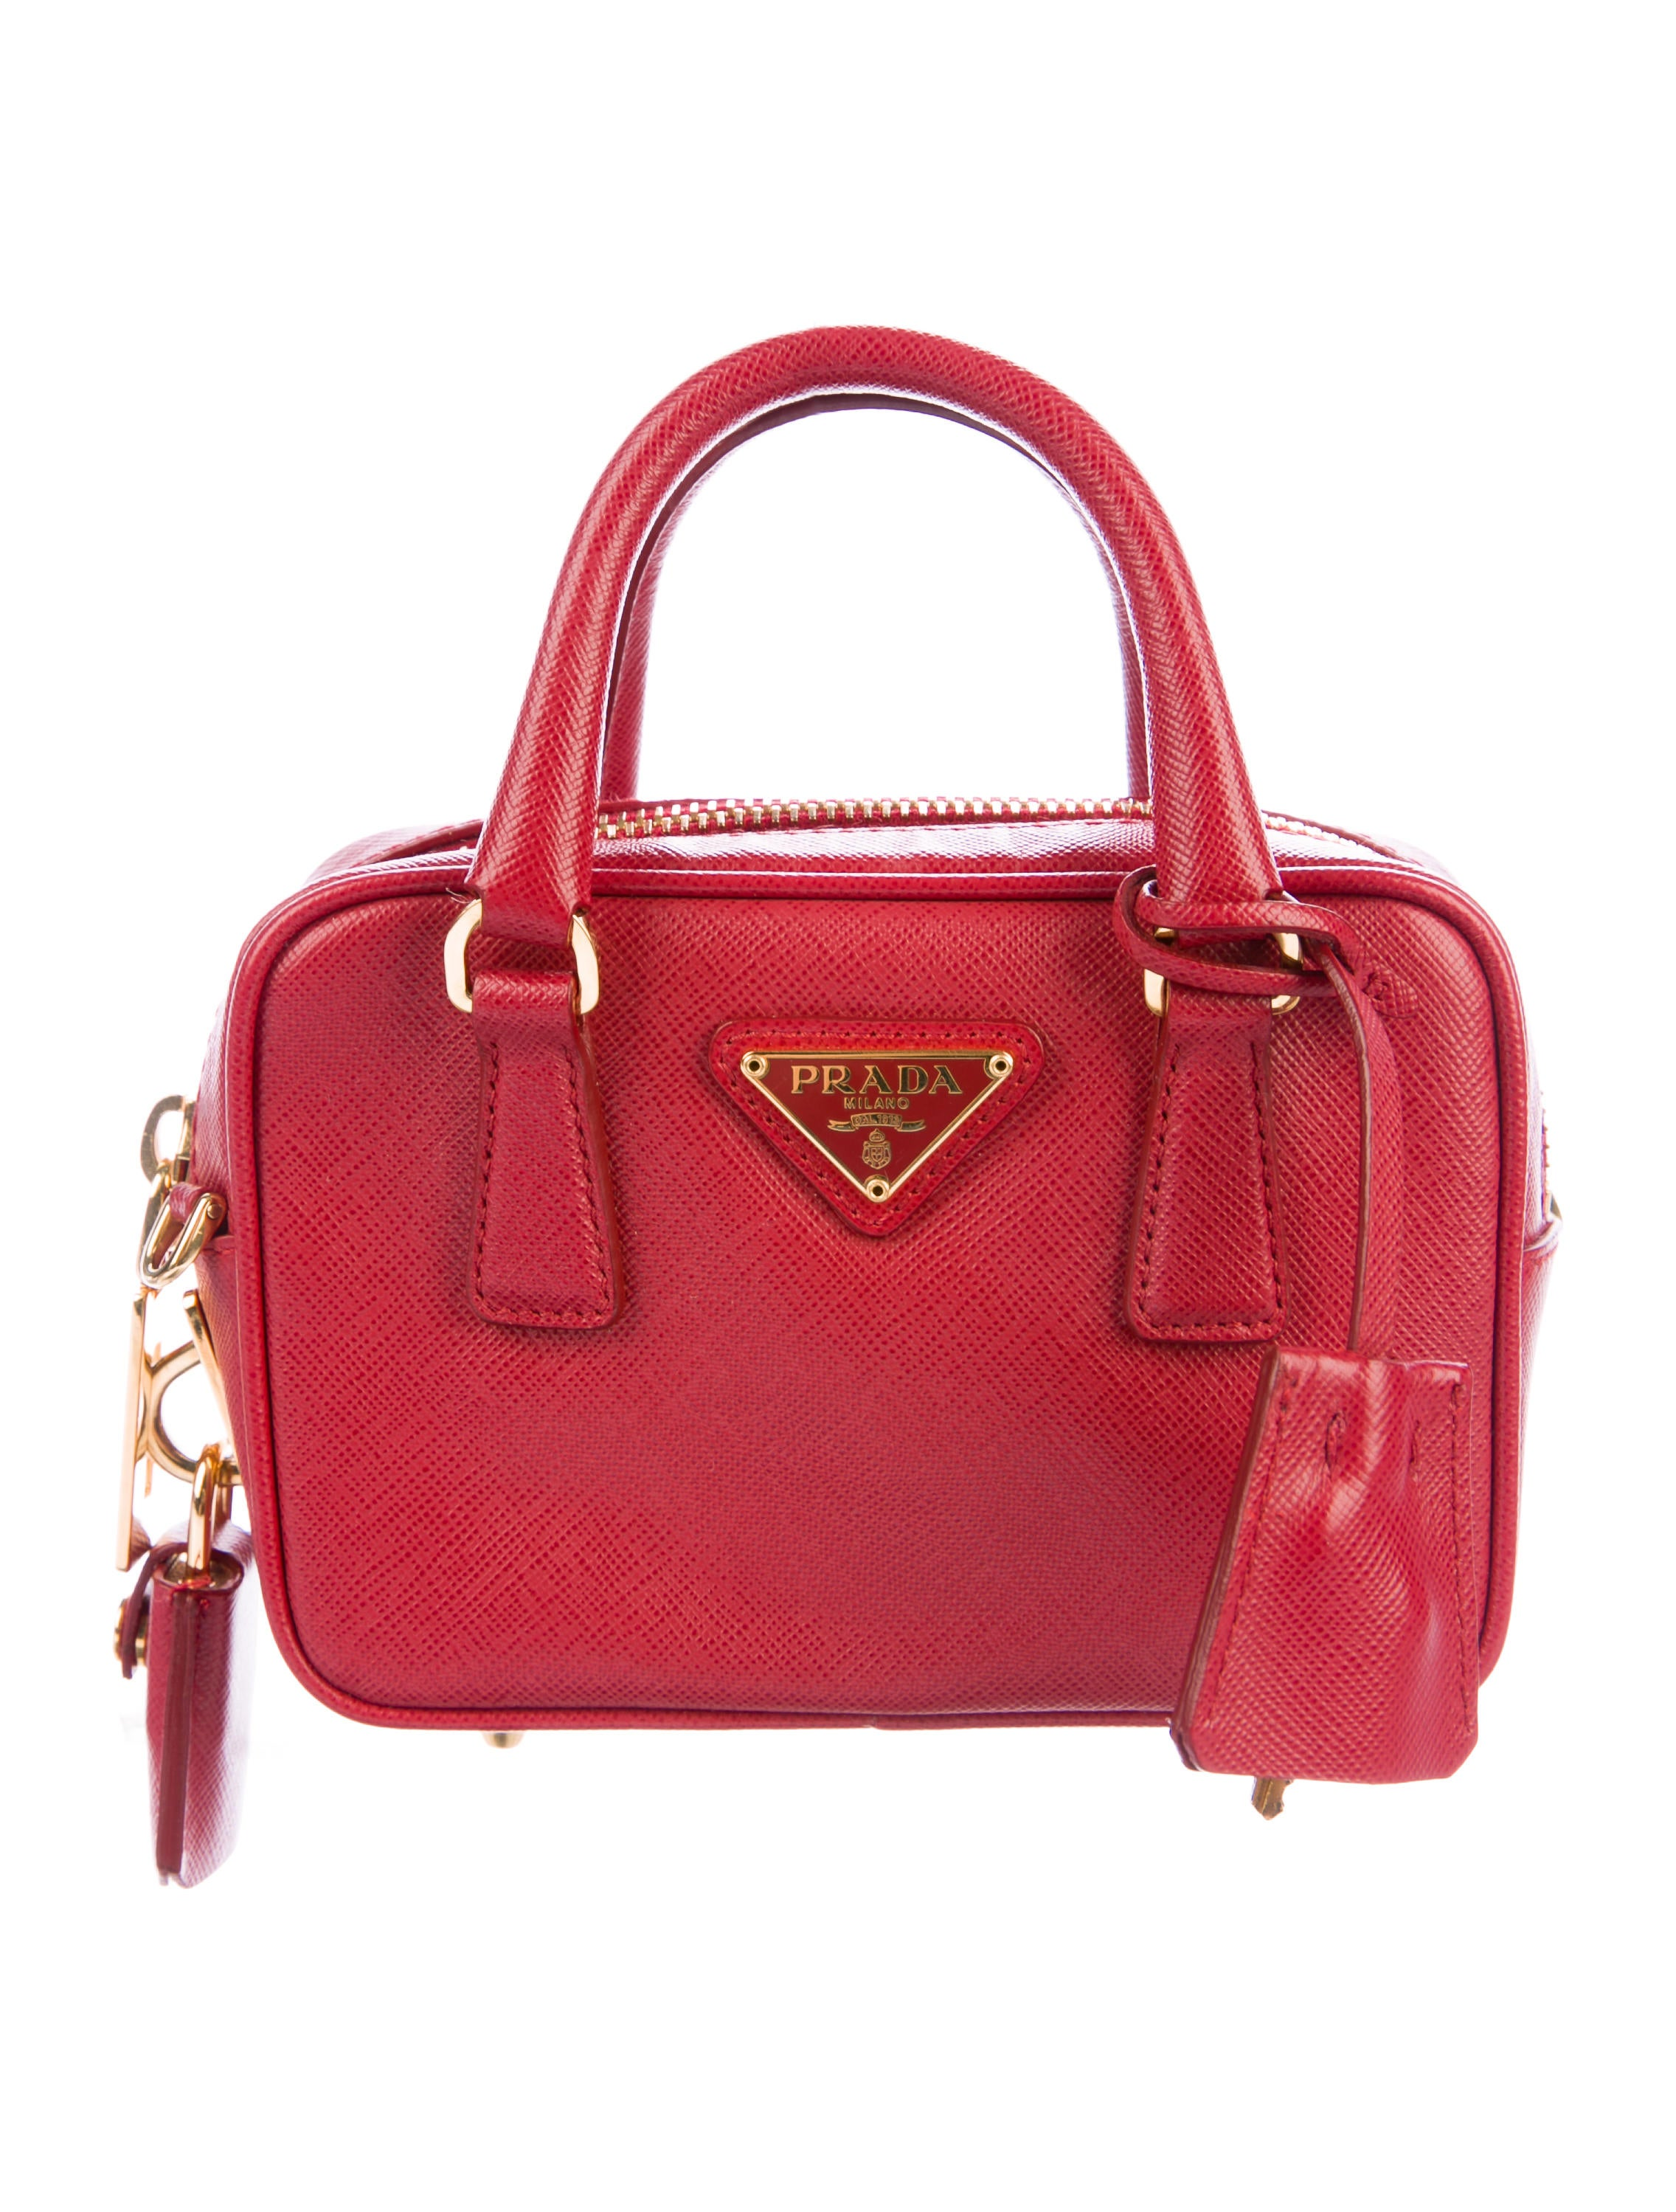 ed4ac08223 Prada Saffiano Lux Mini Bauletto Bag - Handbags - PRA192861